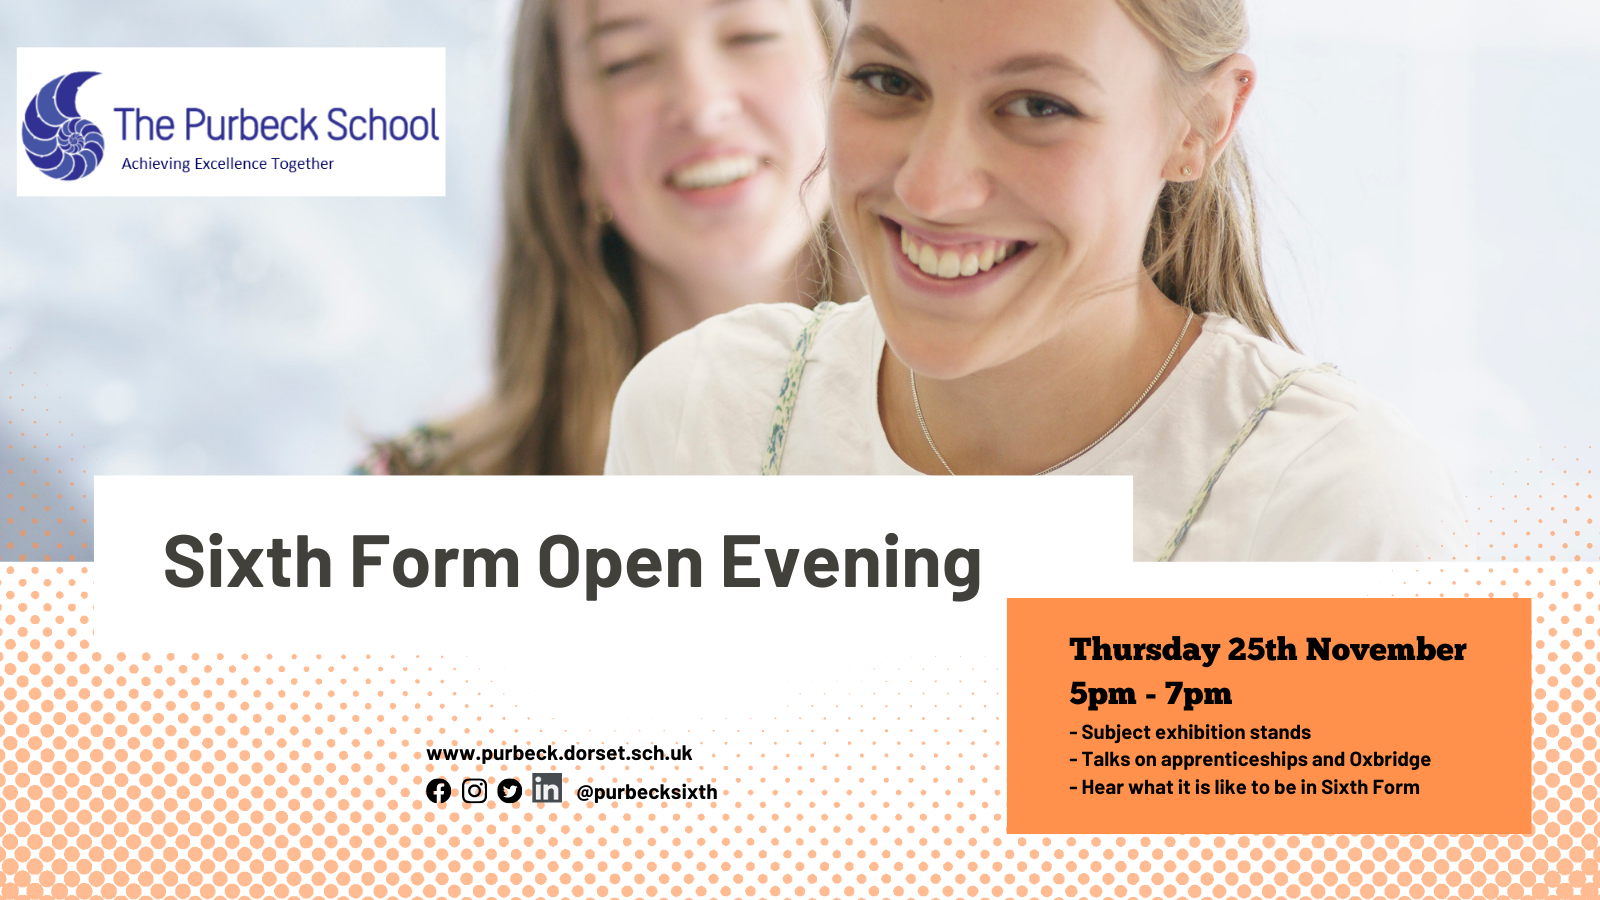 Picture of 6th Form Open Evening@purbecksixth Photo